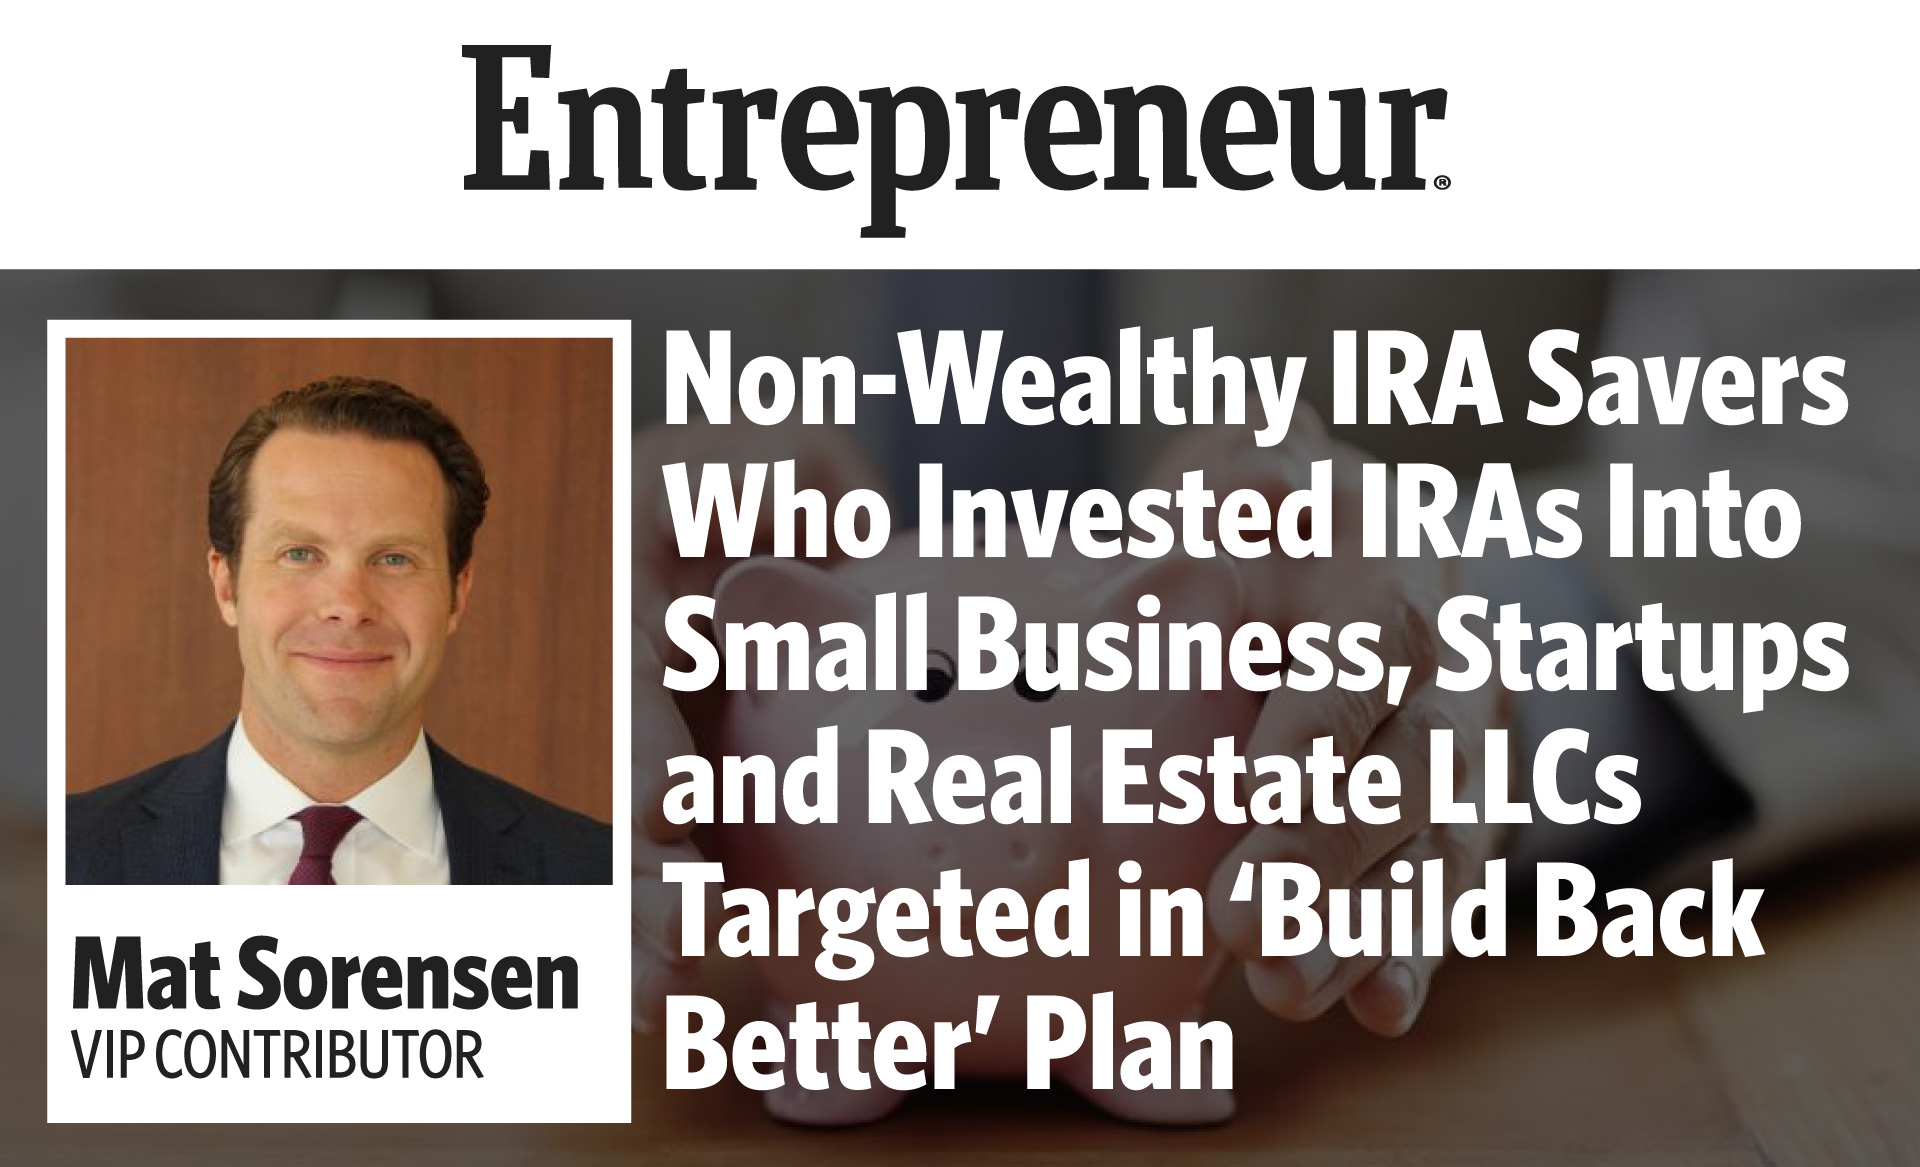 IRA Provisions Build Back Better Plan